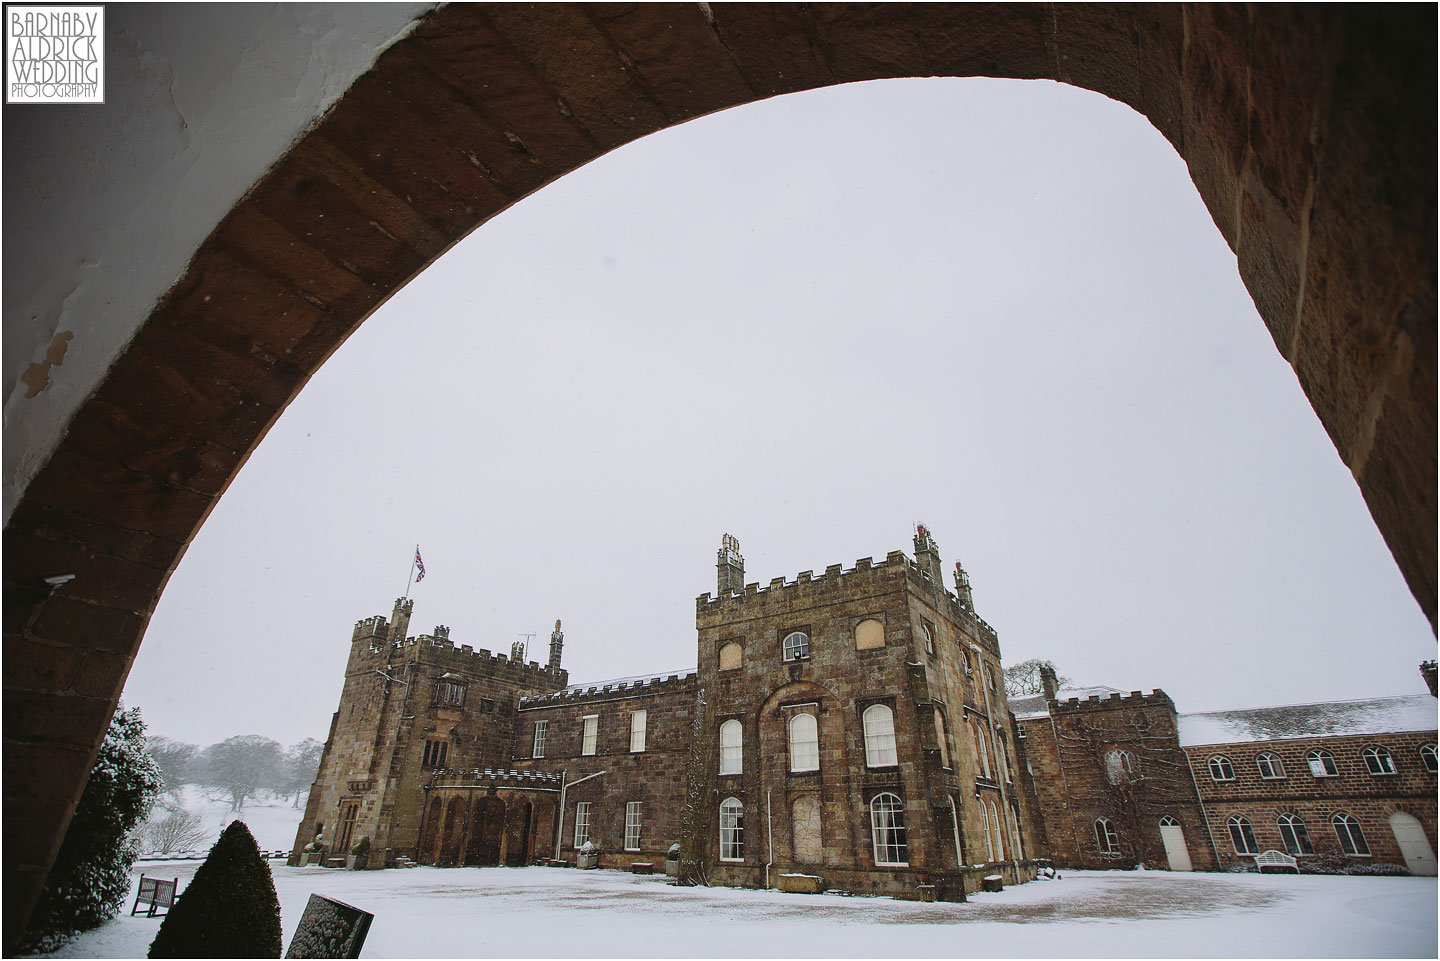 A photograph of one of Yorkshires loveliest wedding venues Ripley Castle north of Harrogate